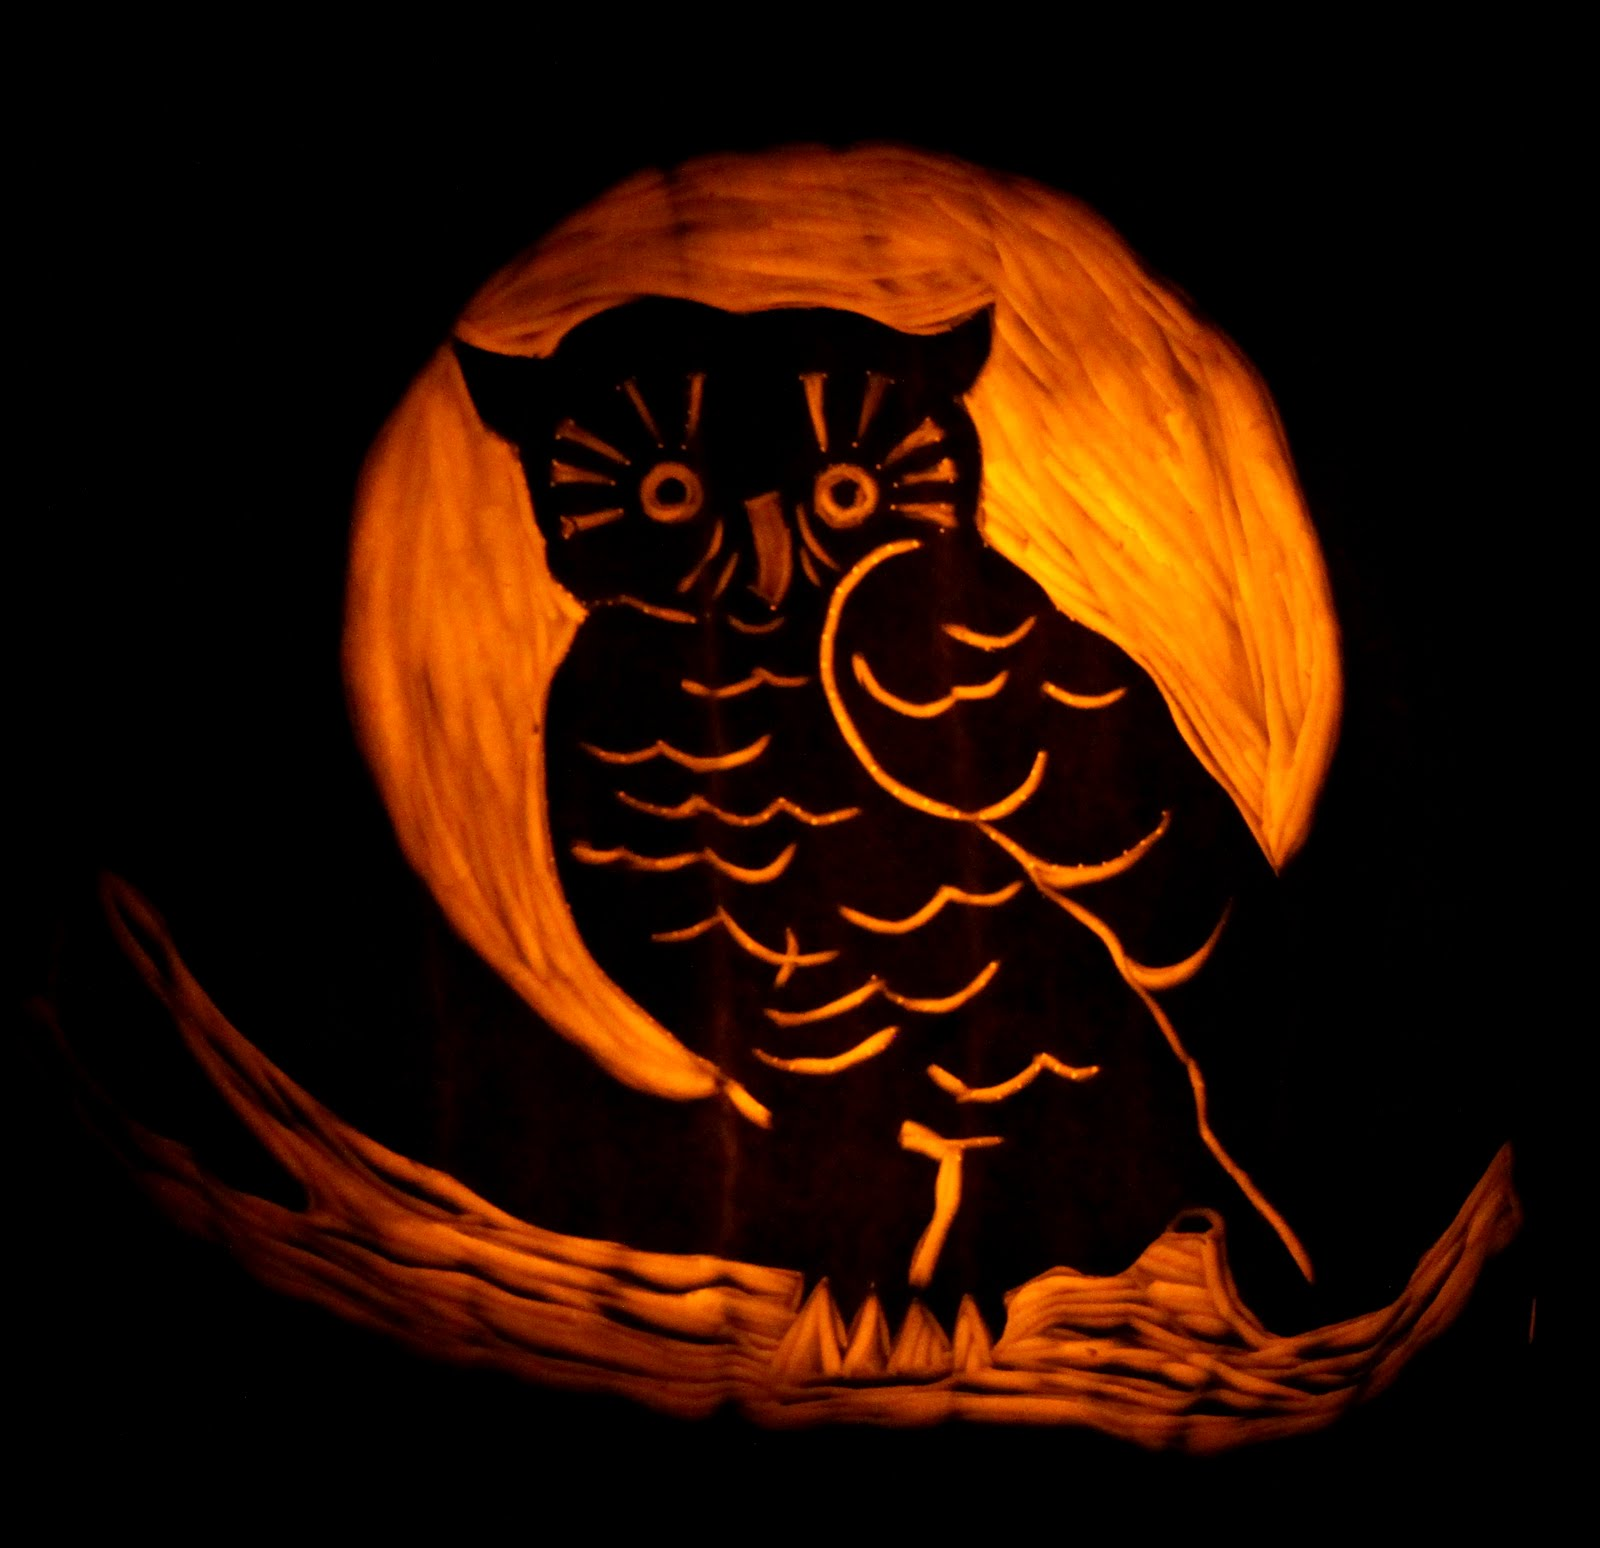 Designed by Chance: All Hallows Eve Pumpkin Tutorial